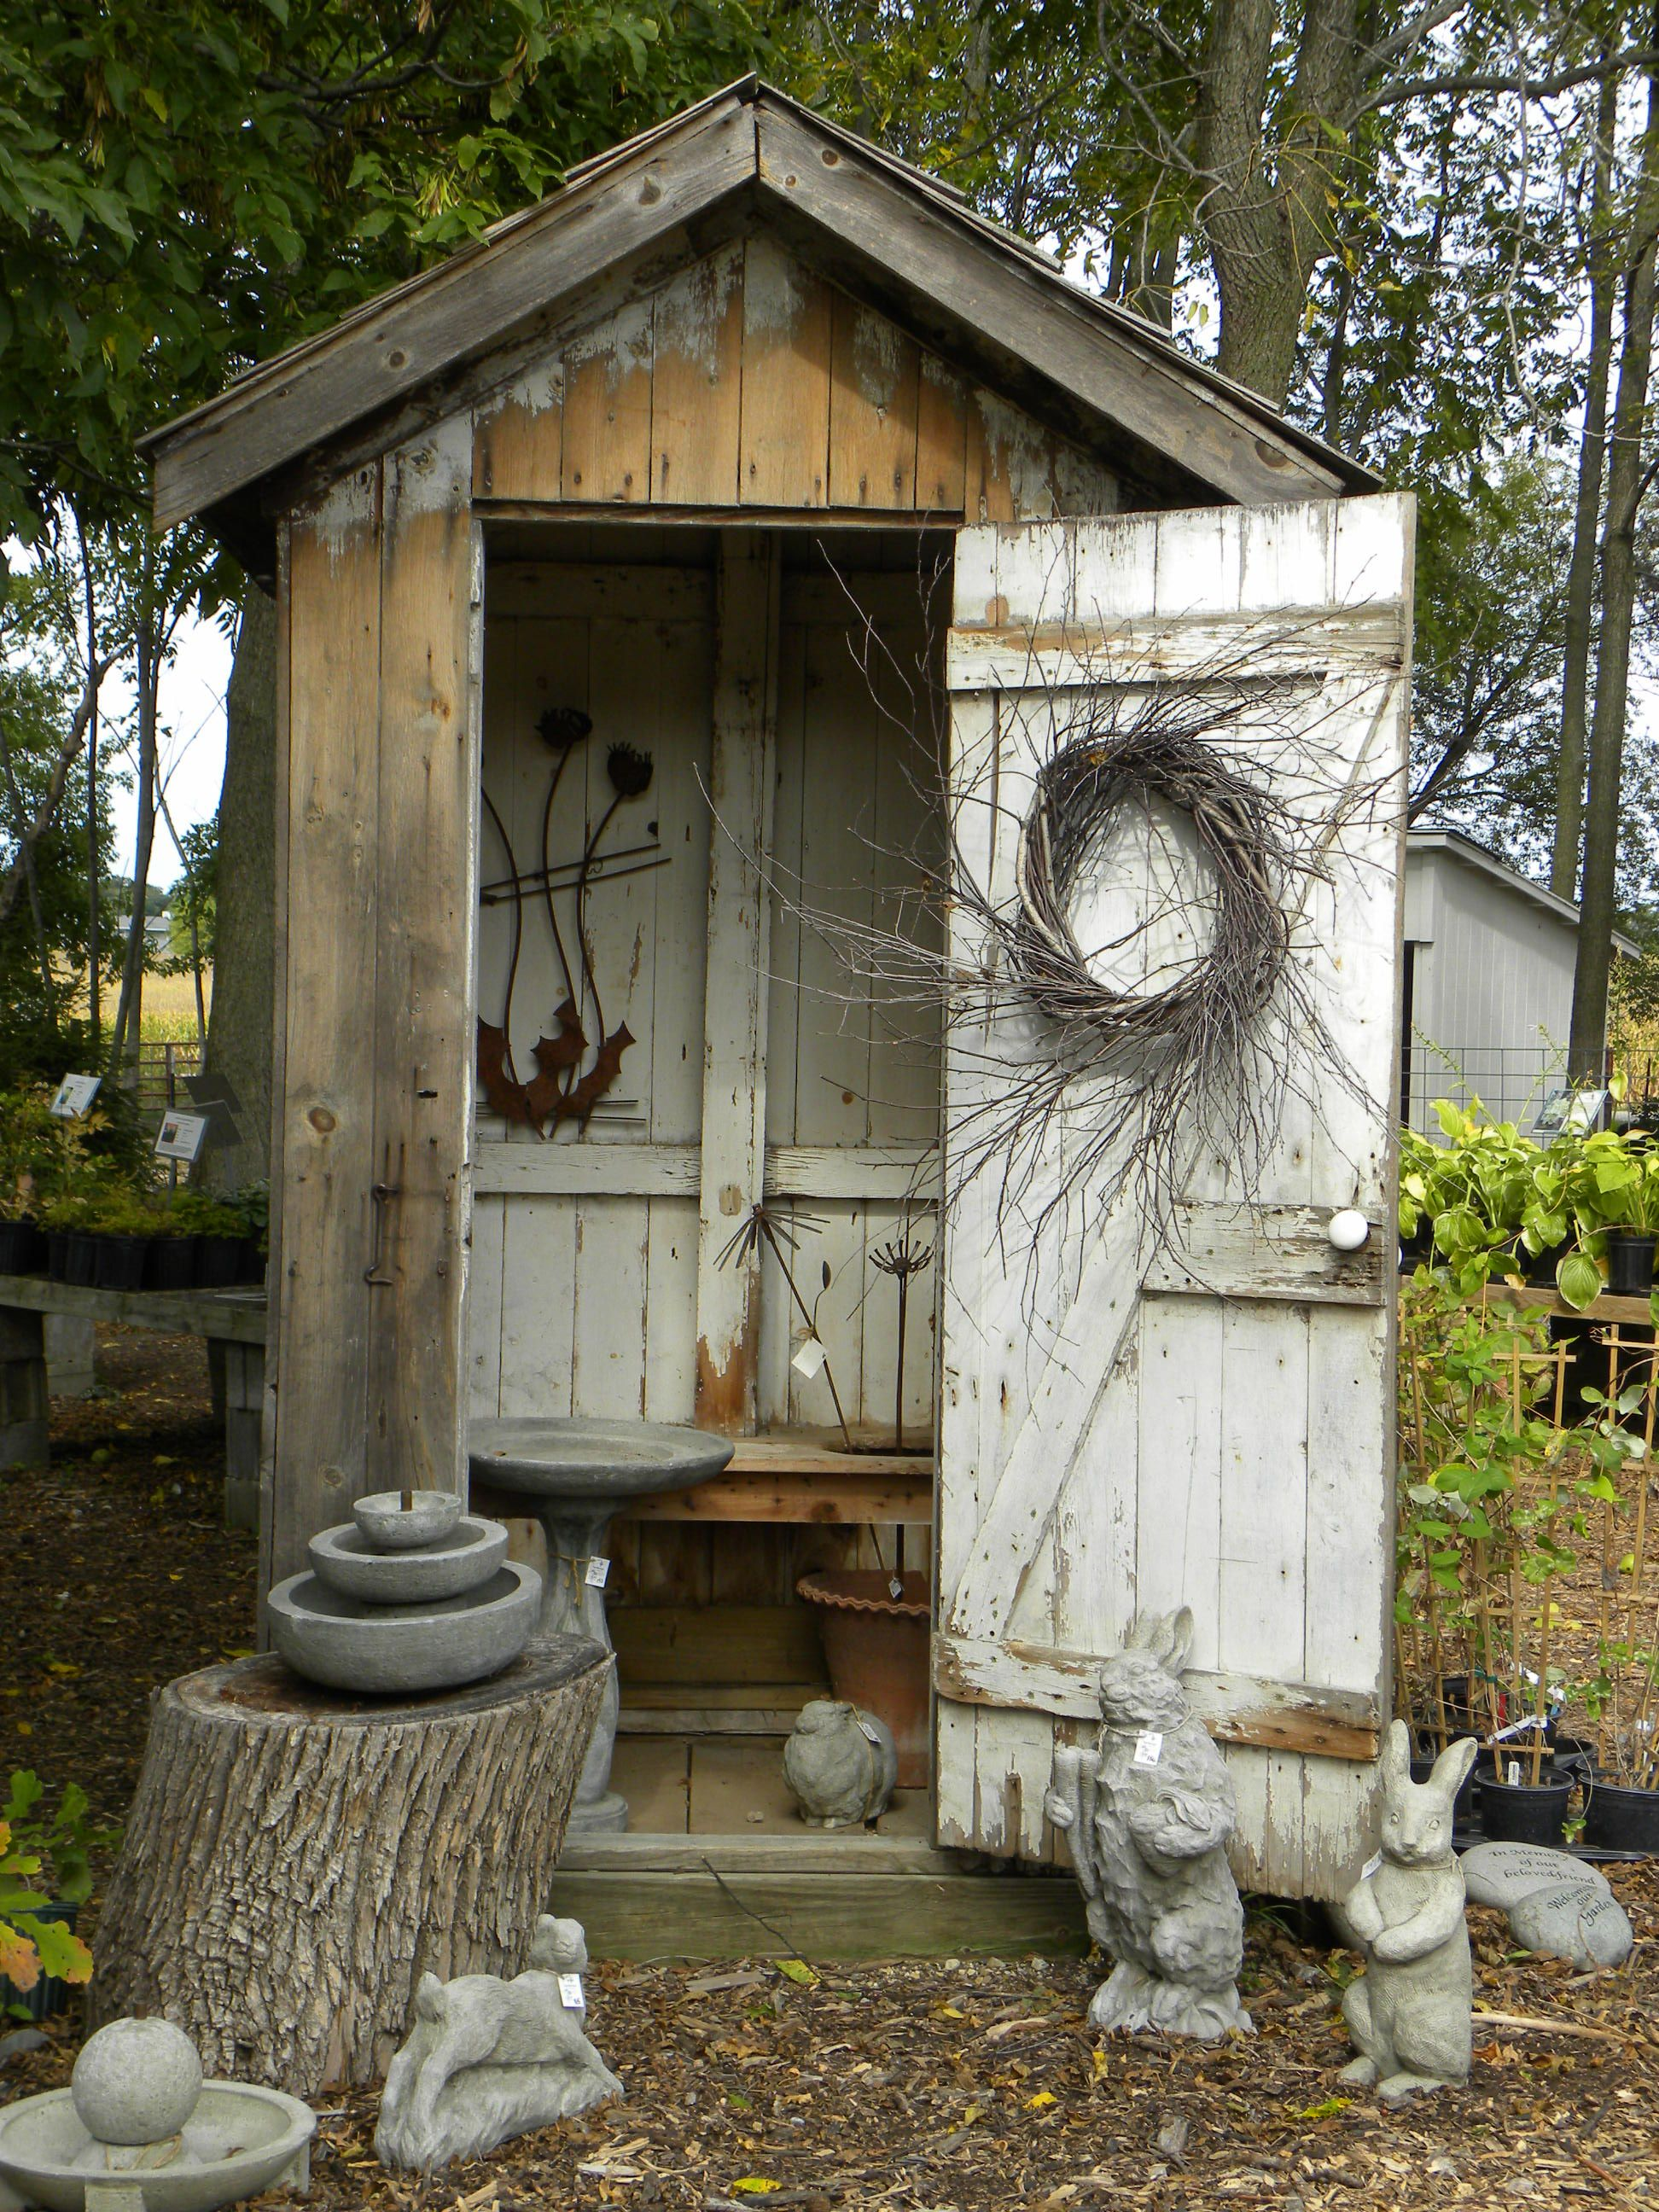 Primitive country gardens - Find This Pin And More On Outdoor Gardens